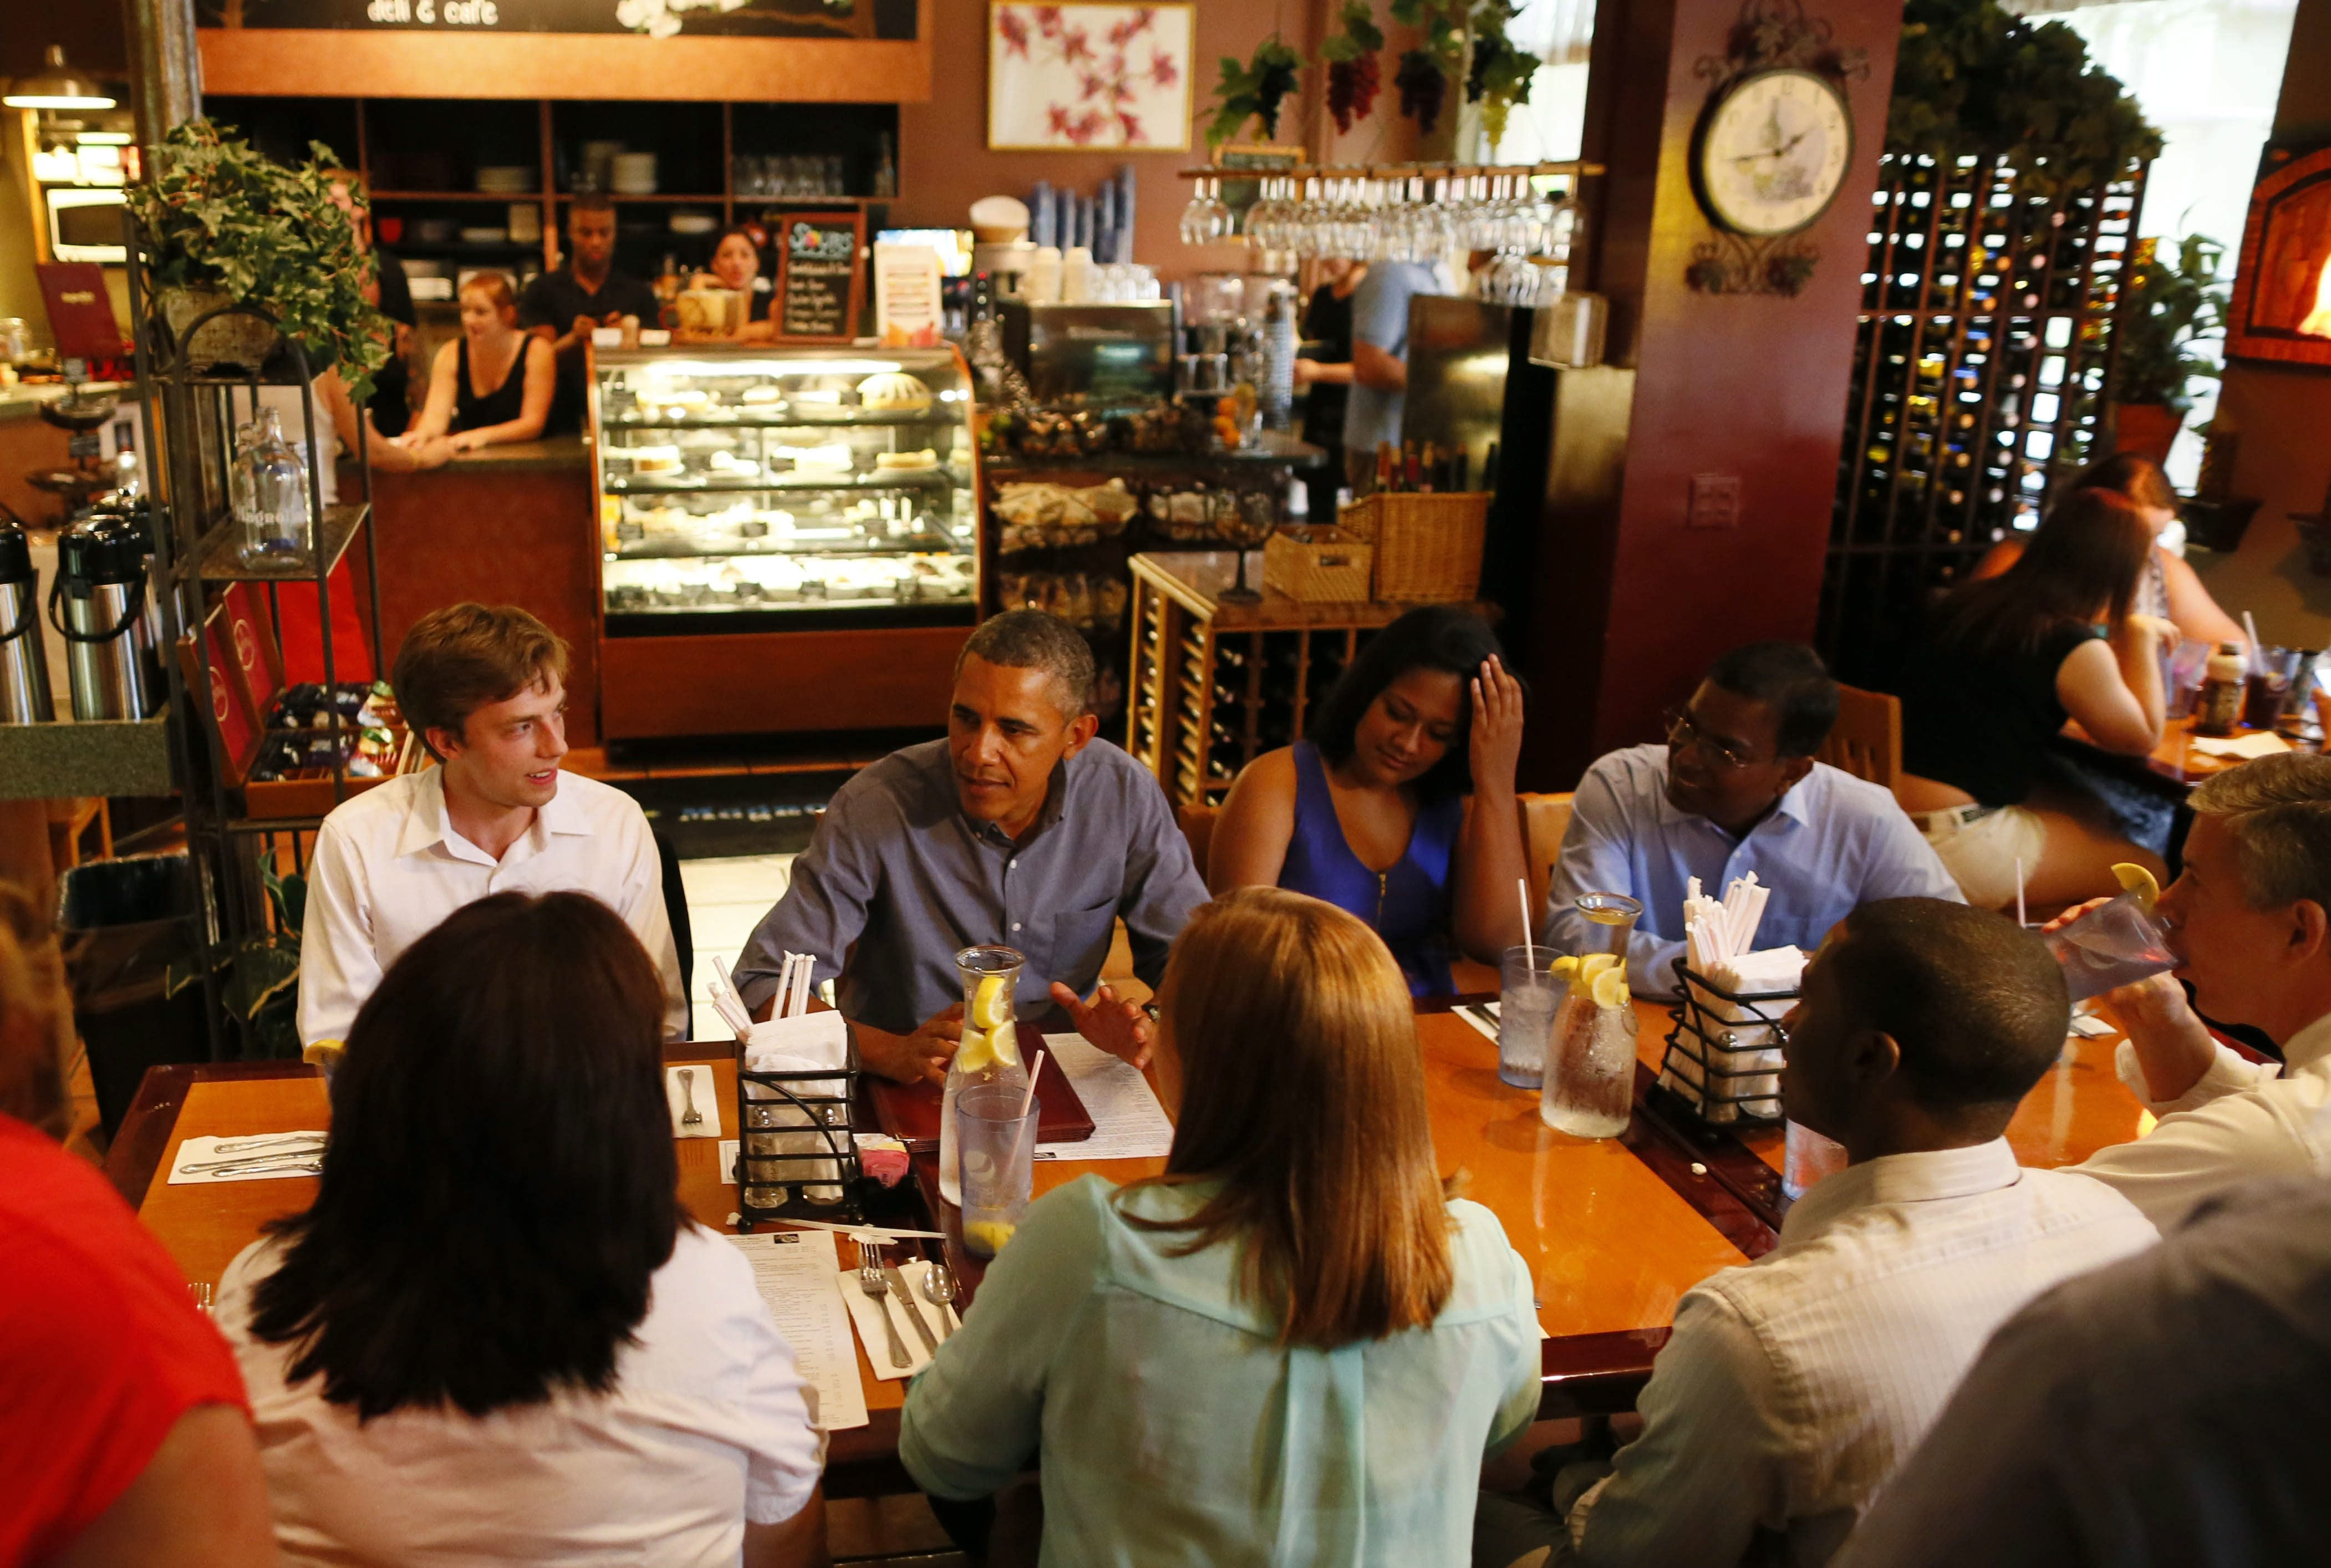 President Obama sits down with University of Rochester students for a roundtable discussion during an unscheduled stop Thursday at Magnolia's Deli and Cafe in Rochester. Sitting with Obama are, from left, Doug Brady, Wesline Manuelpillai and Peter Manuelpillai. Obama's New York bus tour Thursday also included Buffalo and Seneca Falls.